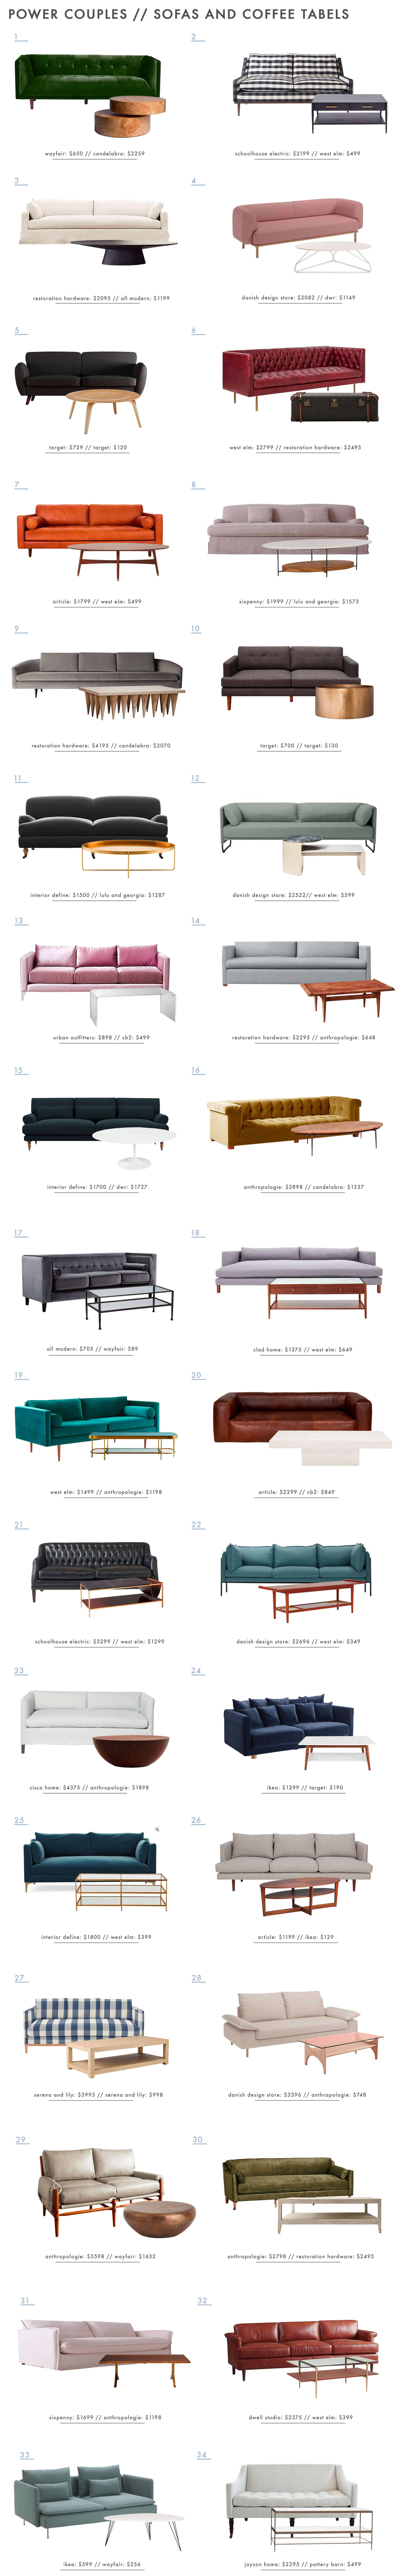 Emily Henderson Power Couples Sofas Coffee Tables Roundup